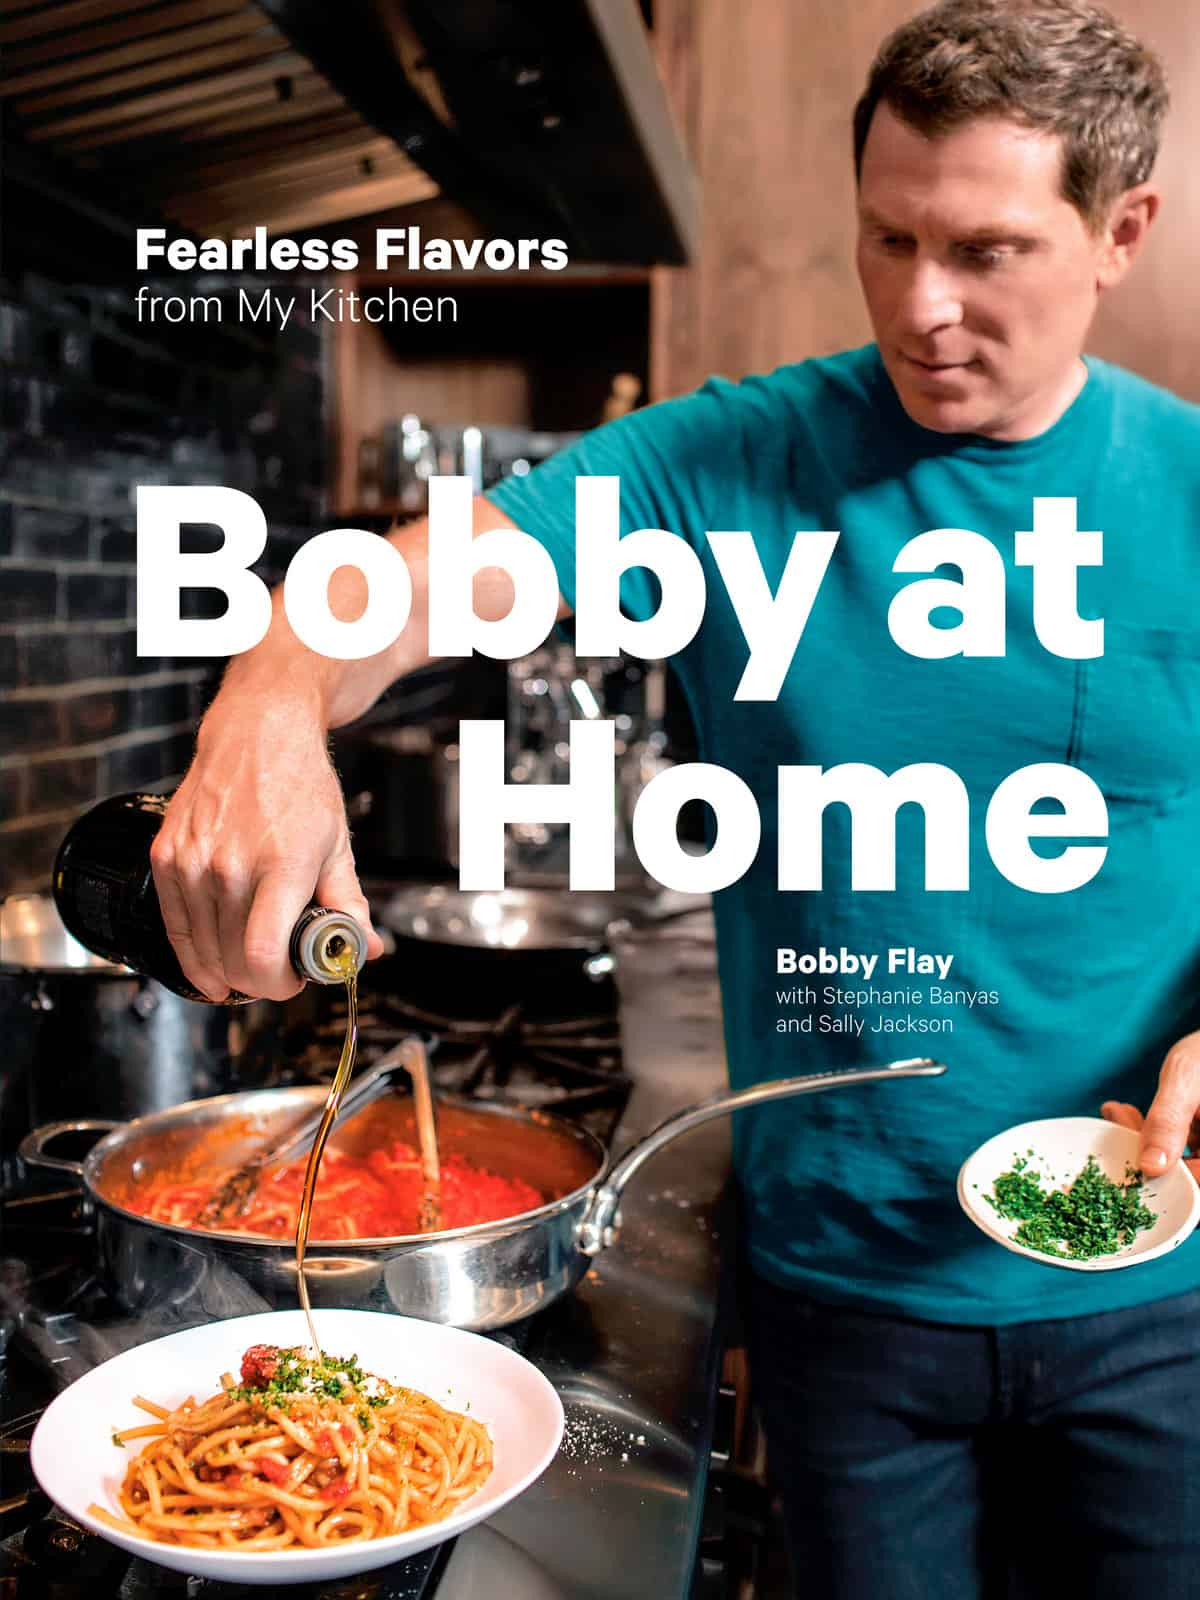 If you've ever wished you could cook just like Bobby Flay, here's your chance!  Bobby at Home: Fearless Flavors From My Kitchen is in stores now! Read on to learn more, plus check out one of my favorite recipes- Brick Chicken with Salsa Verde!